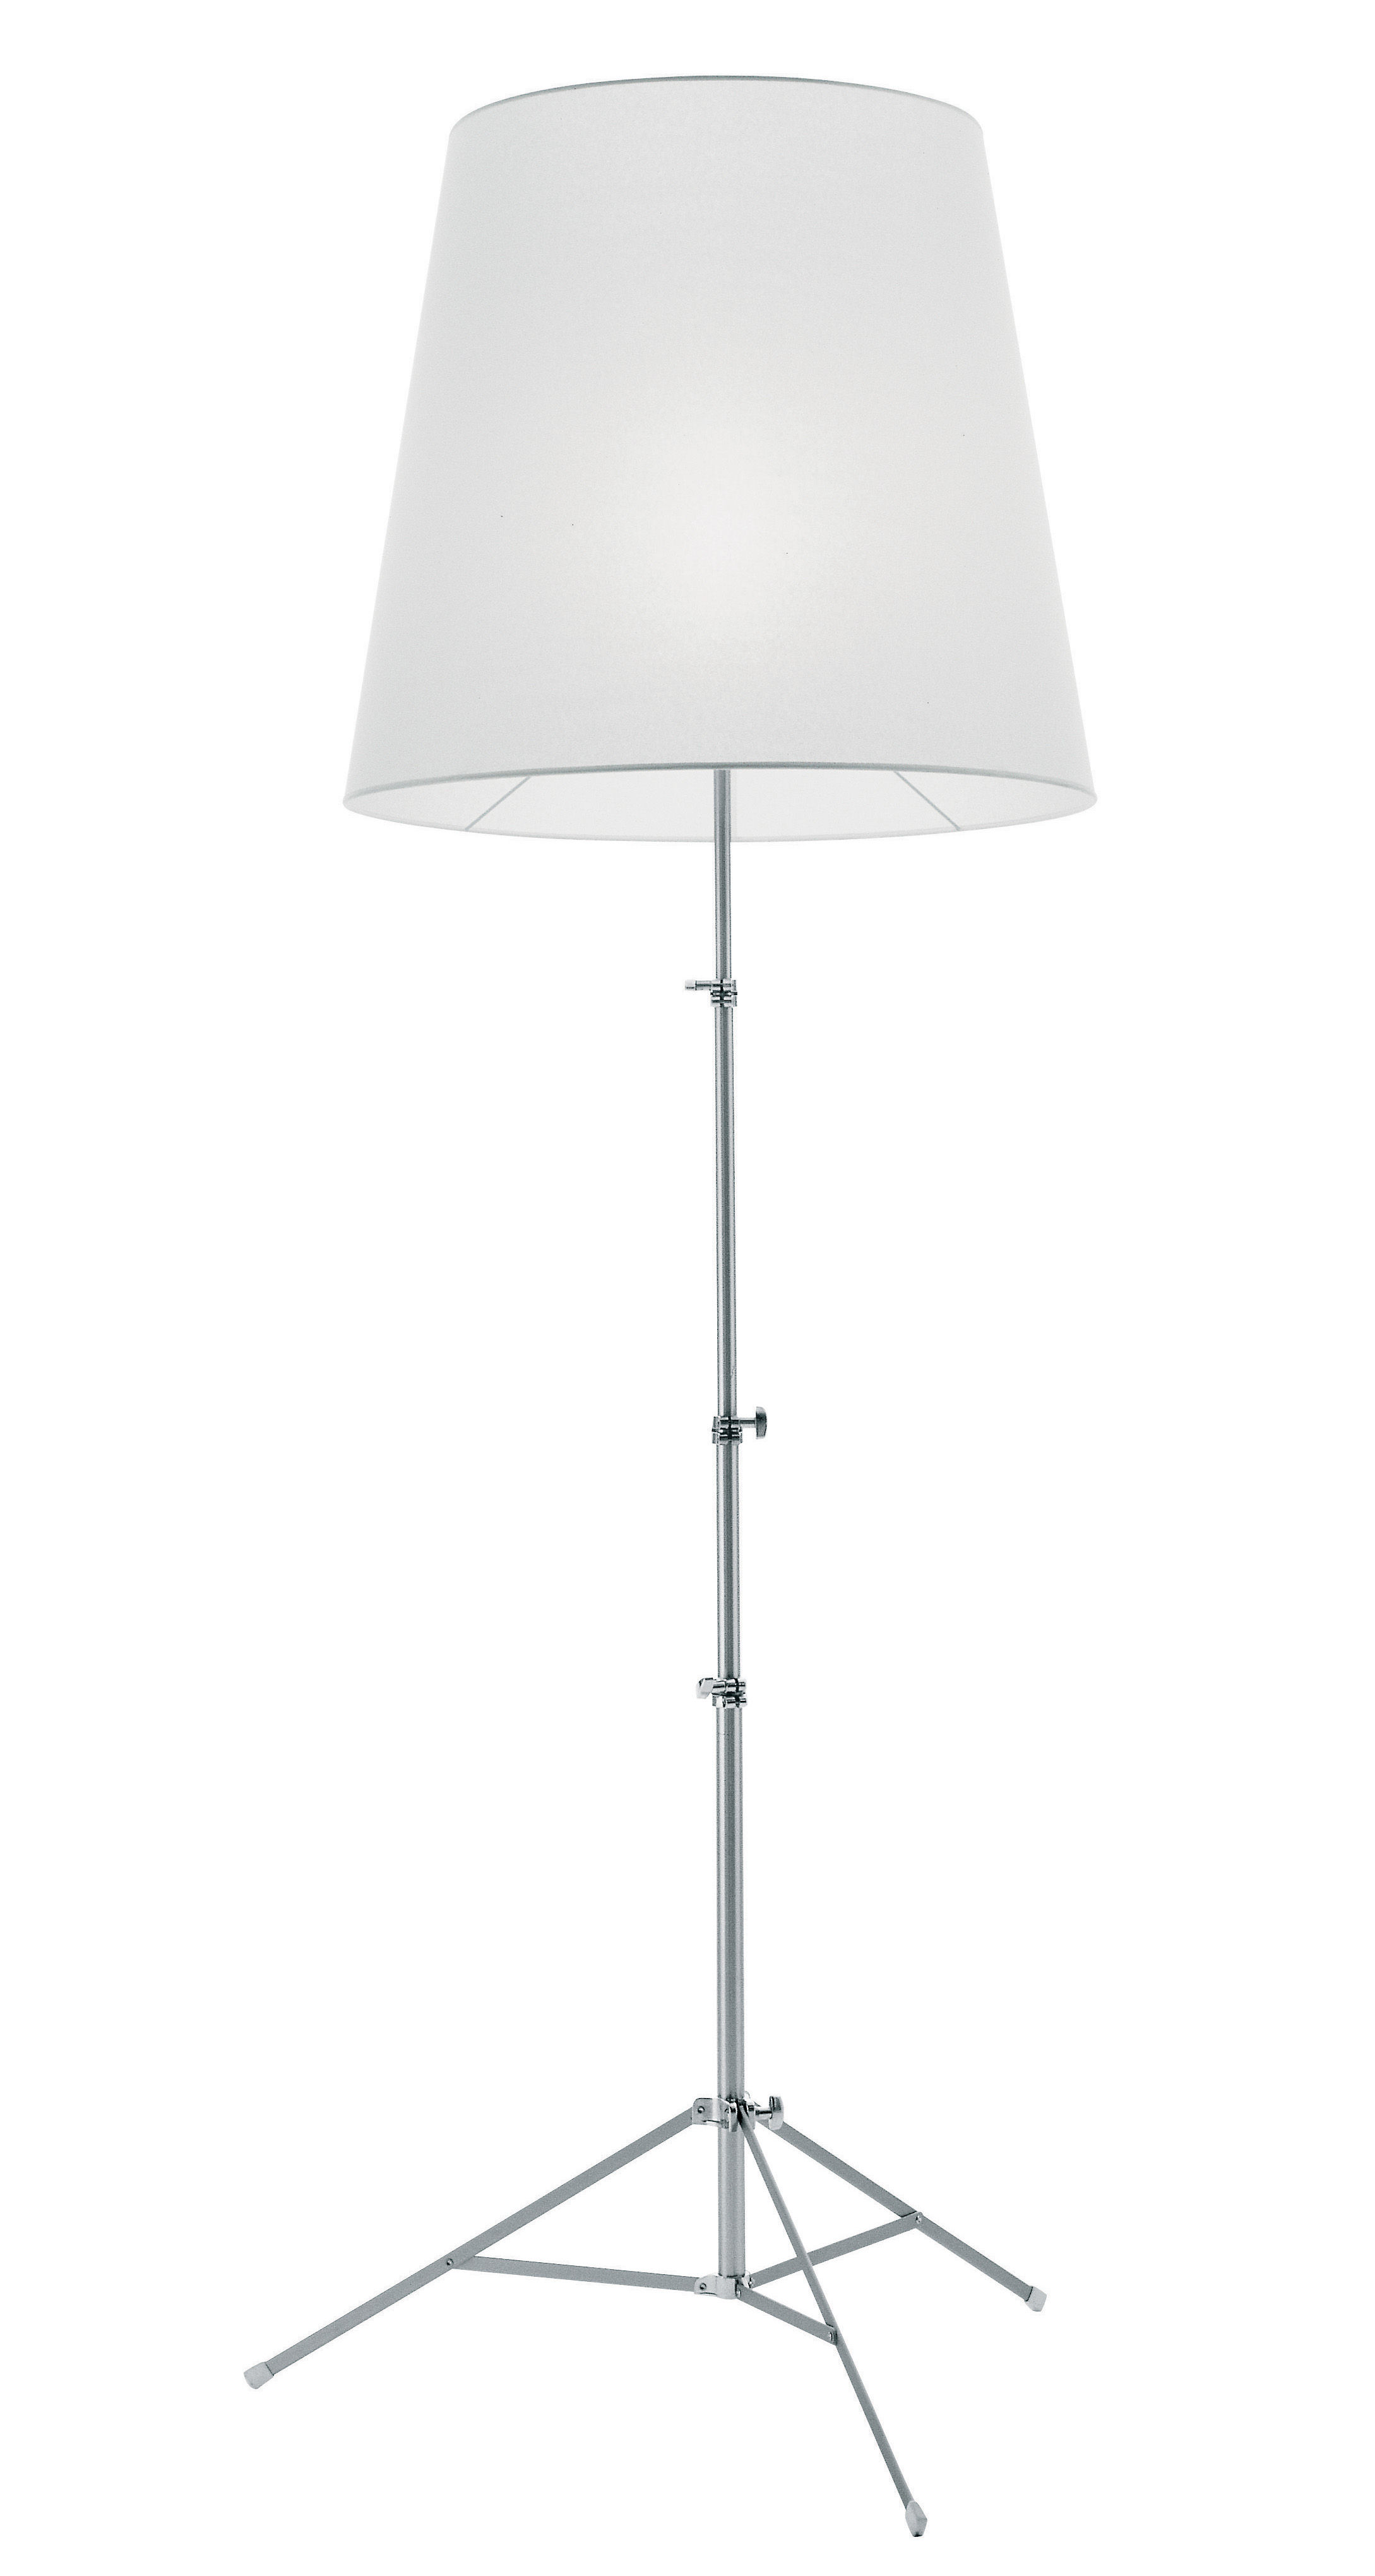 Lighting - Floor lamps - Gilda Floor lamp by Pallucco - White synthetic paper - Anodized aluminium, Synthetic parchment paper